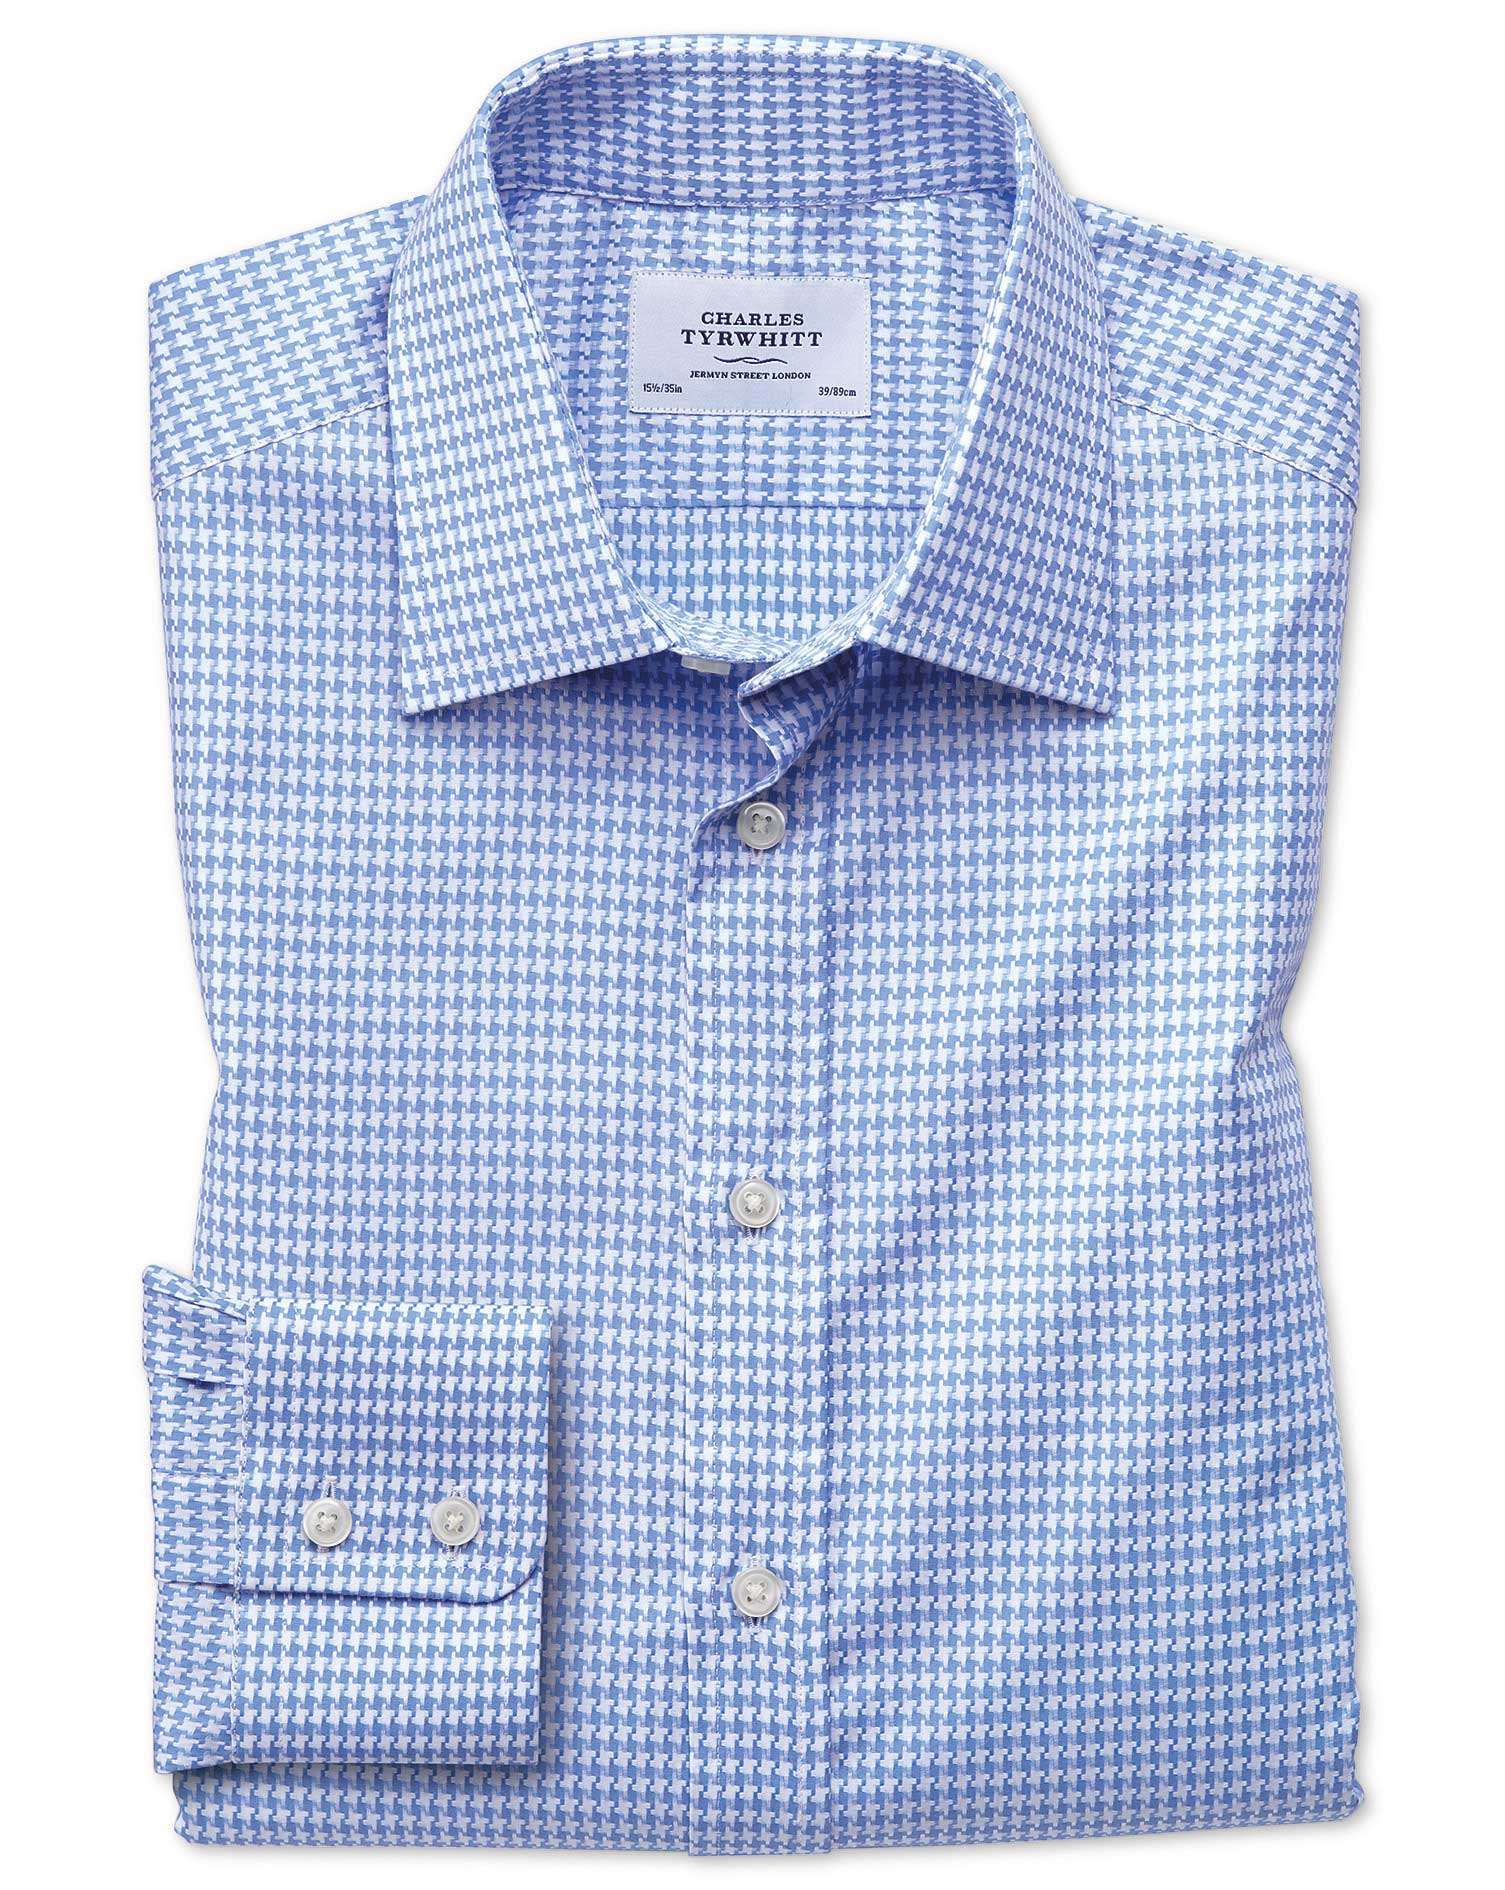 Slim Fit Large Puppytooth Sky Blue Cotton Formal Shirt Single Cuff Size 16.5/36 by Charles Tyrwhitt